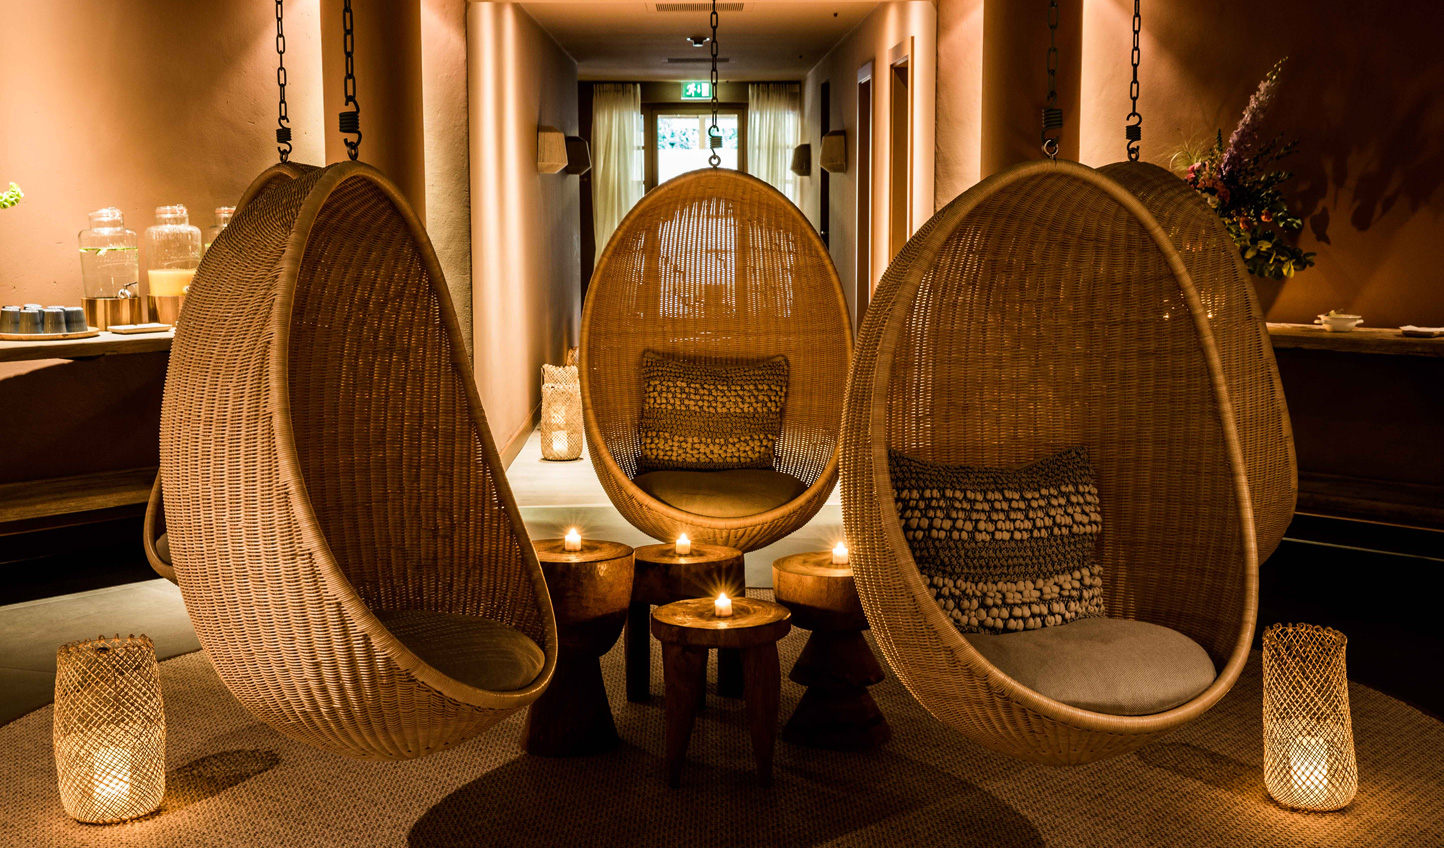 After a day on the slopes, head to Le Grand Spa for a touch of relaxation